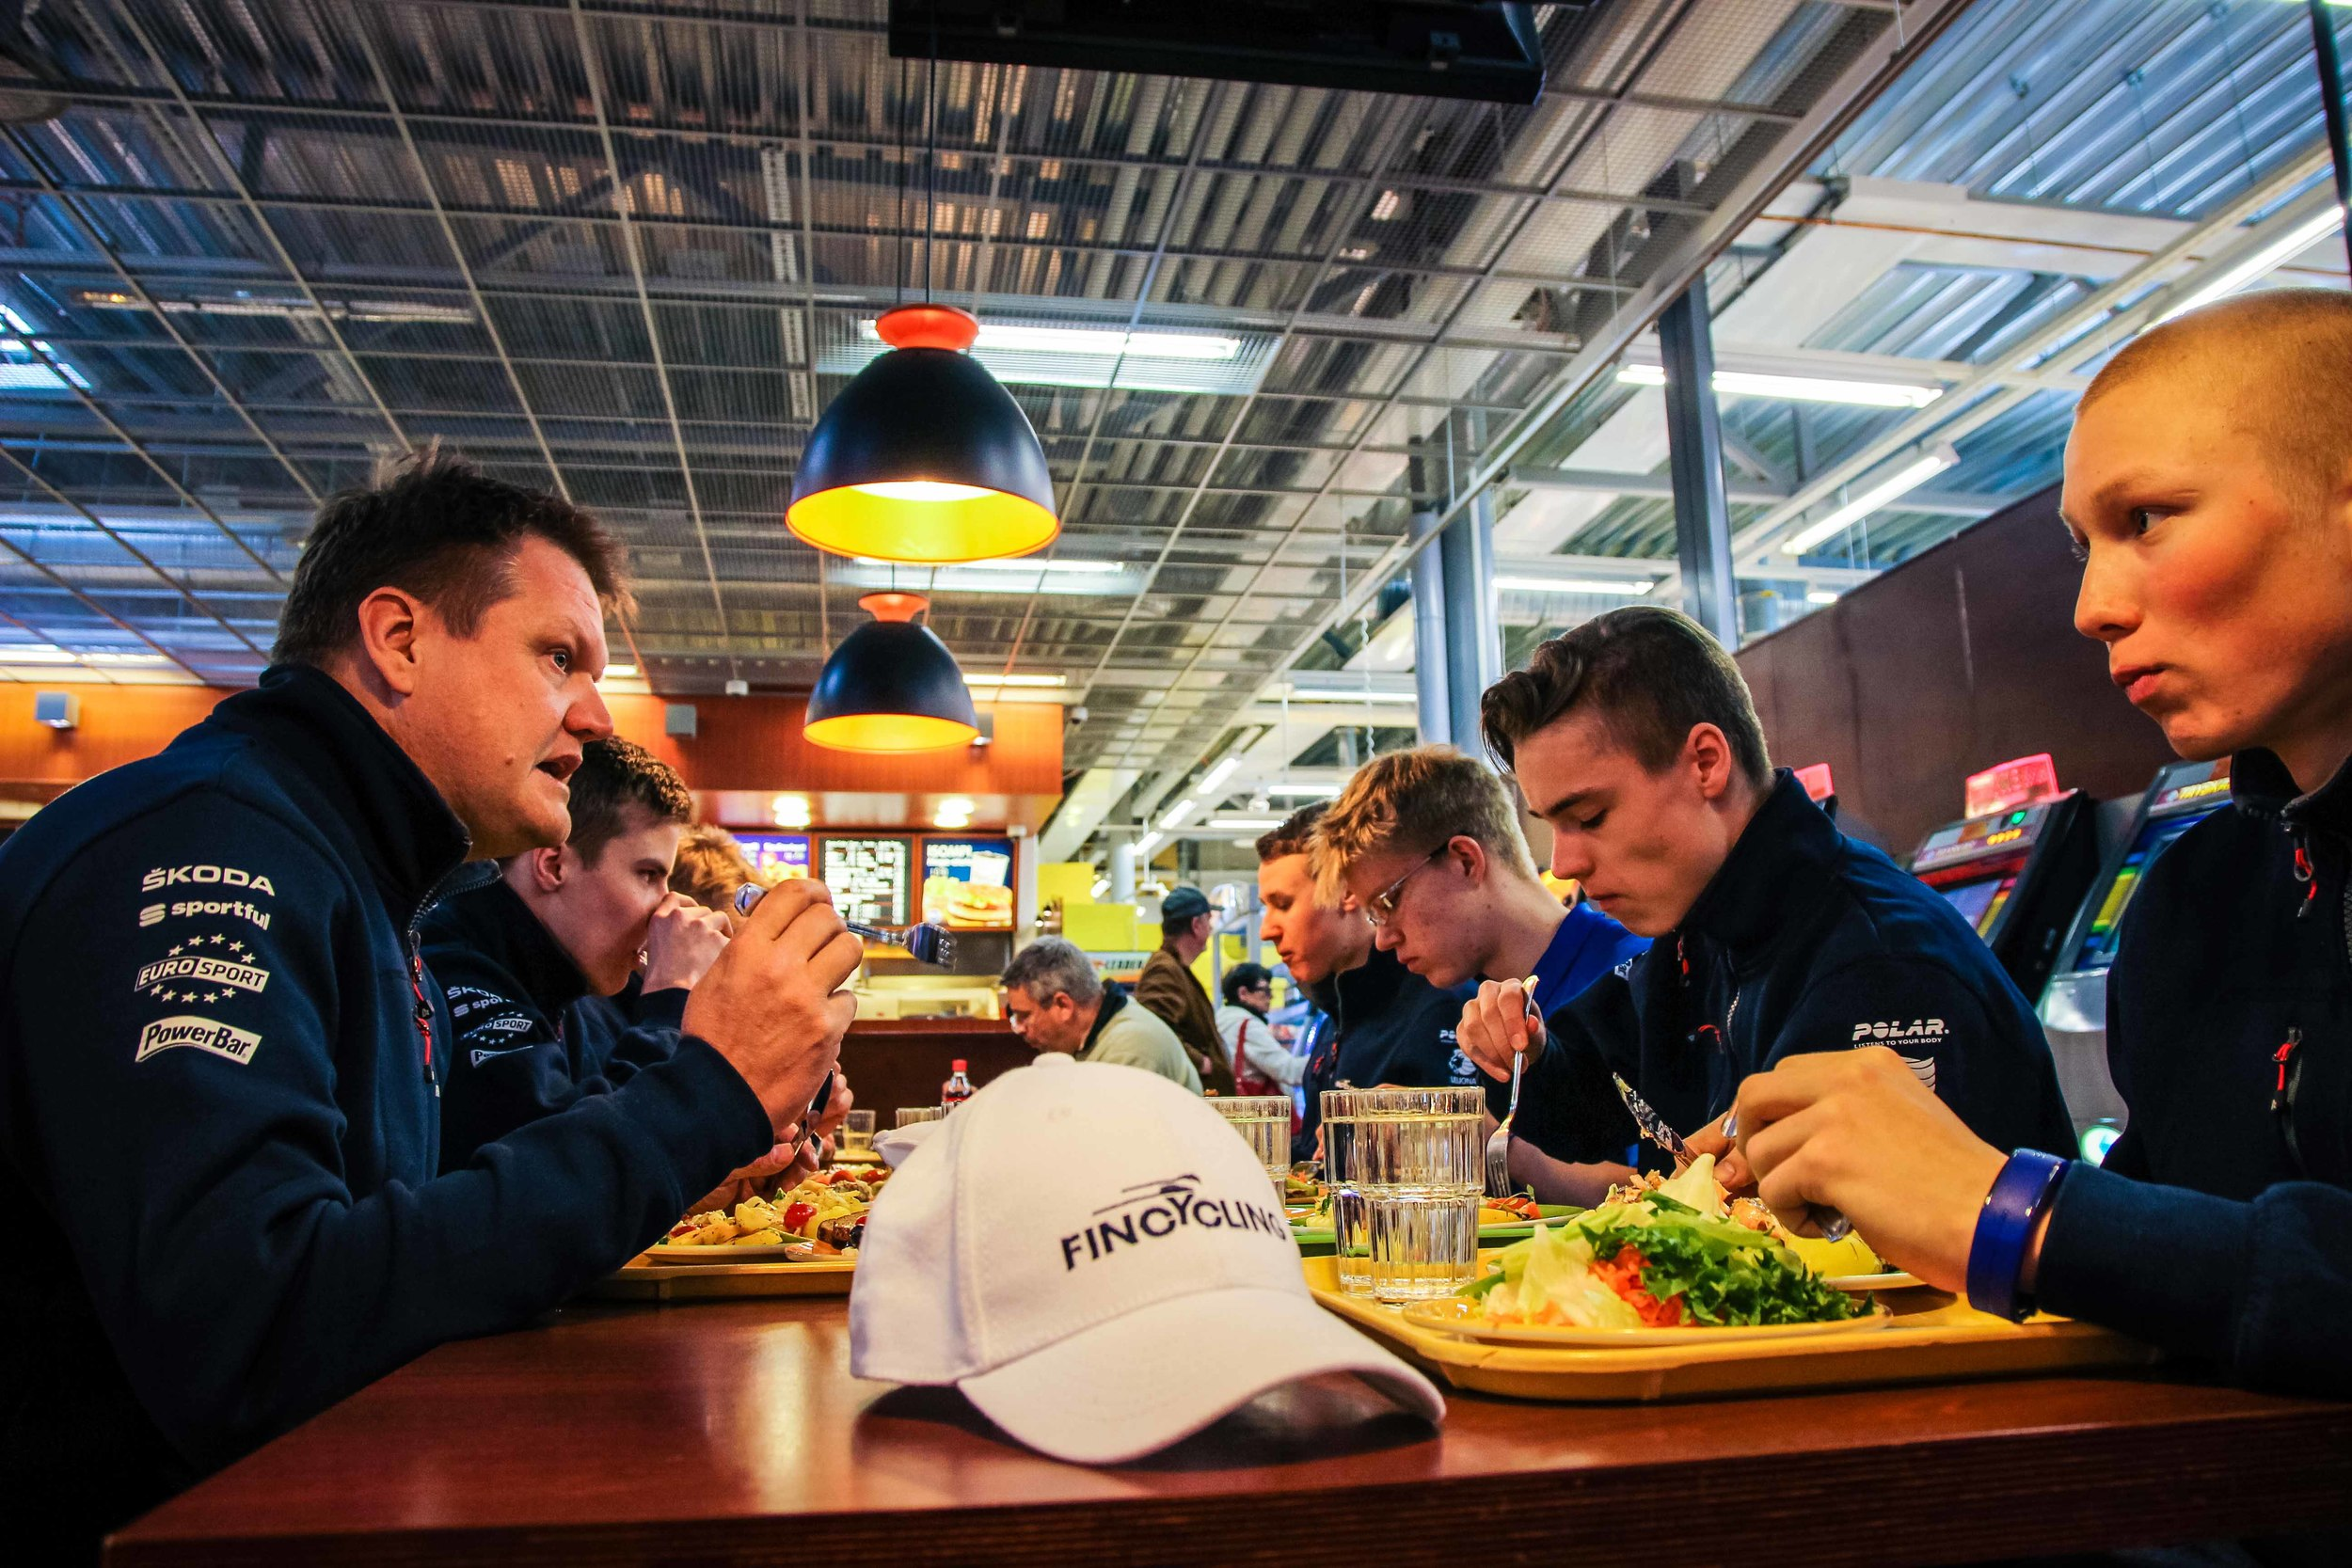 Proper lunch and discussion about the upcoming race